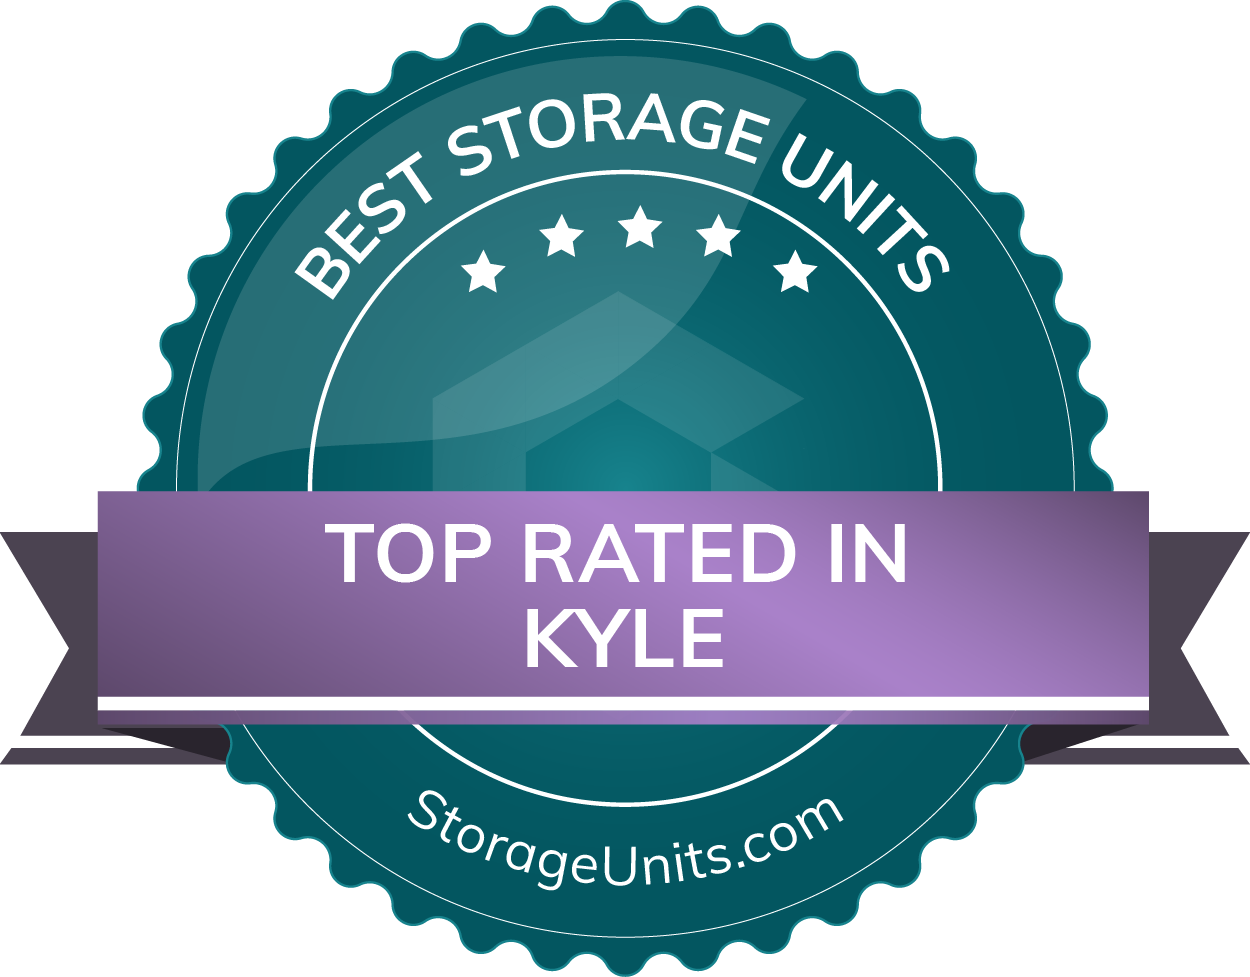 Best Self Storage Units in Kyle, TX